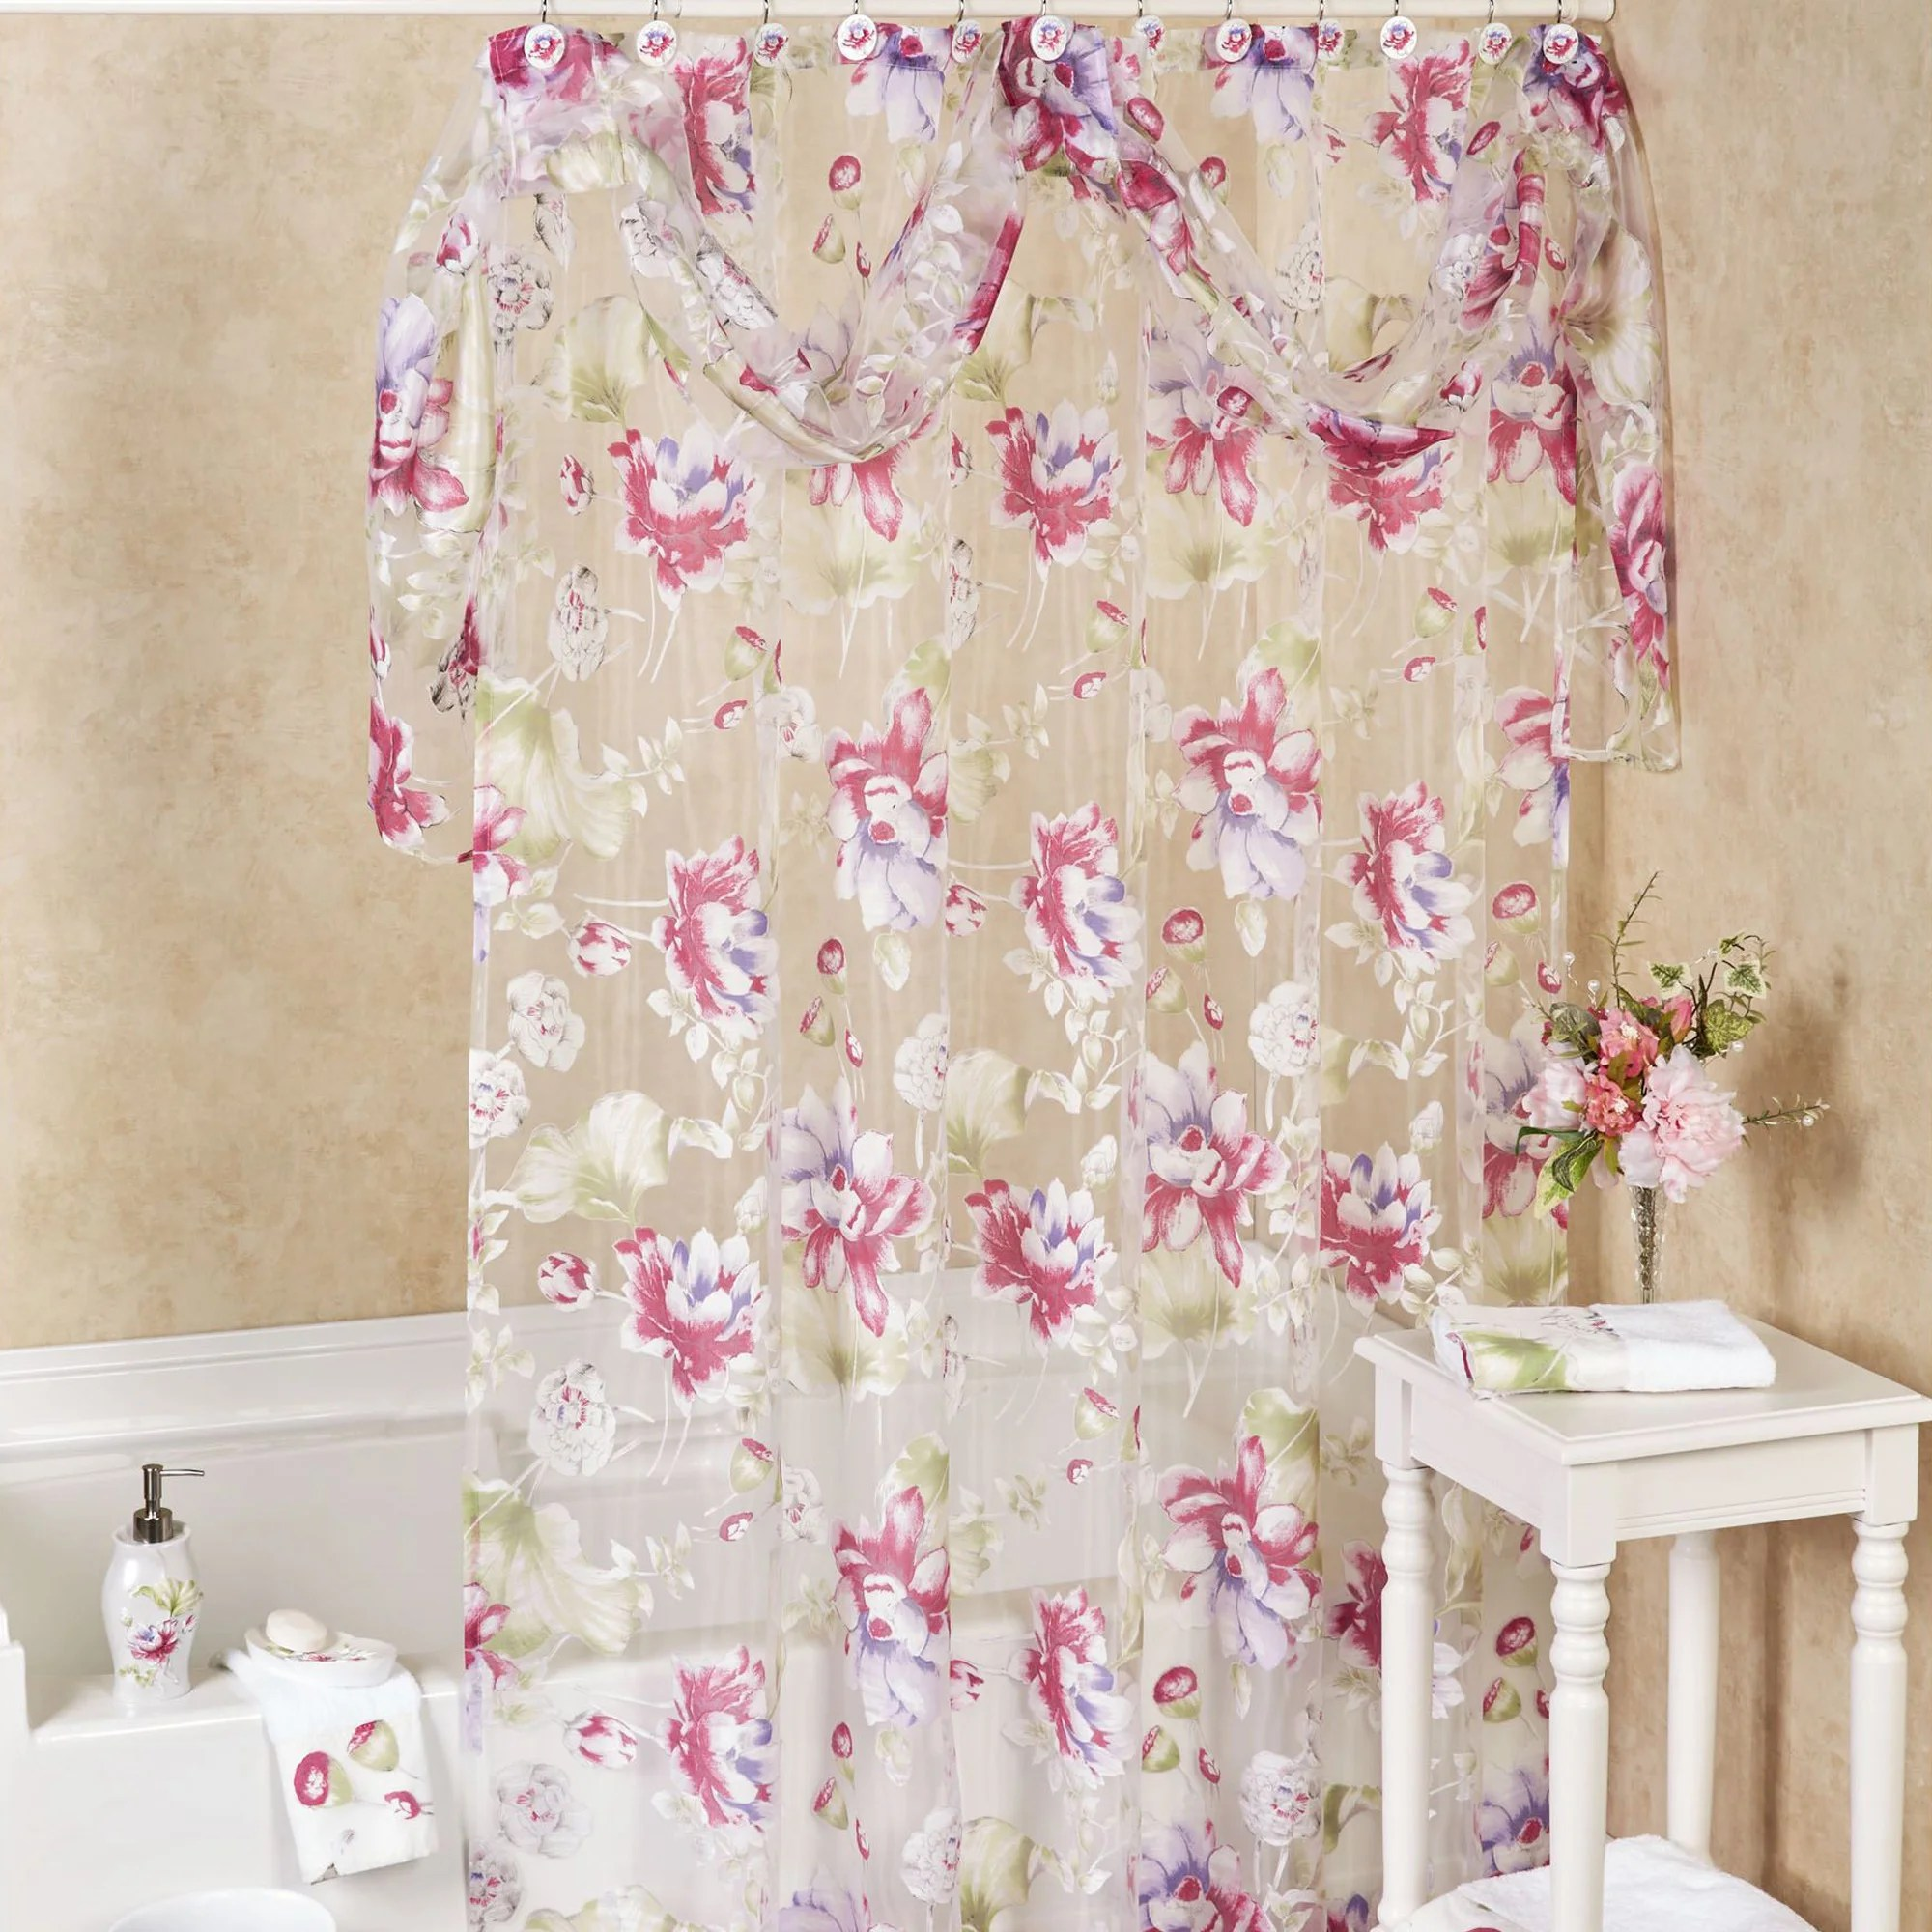 Sheer Floral Shower Curtain With Detachable Scarf Valance